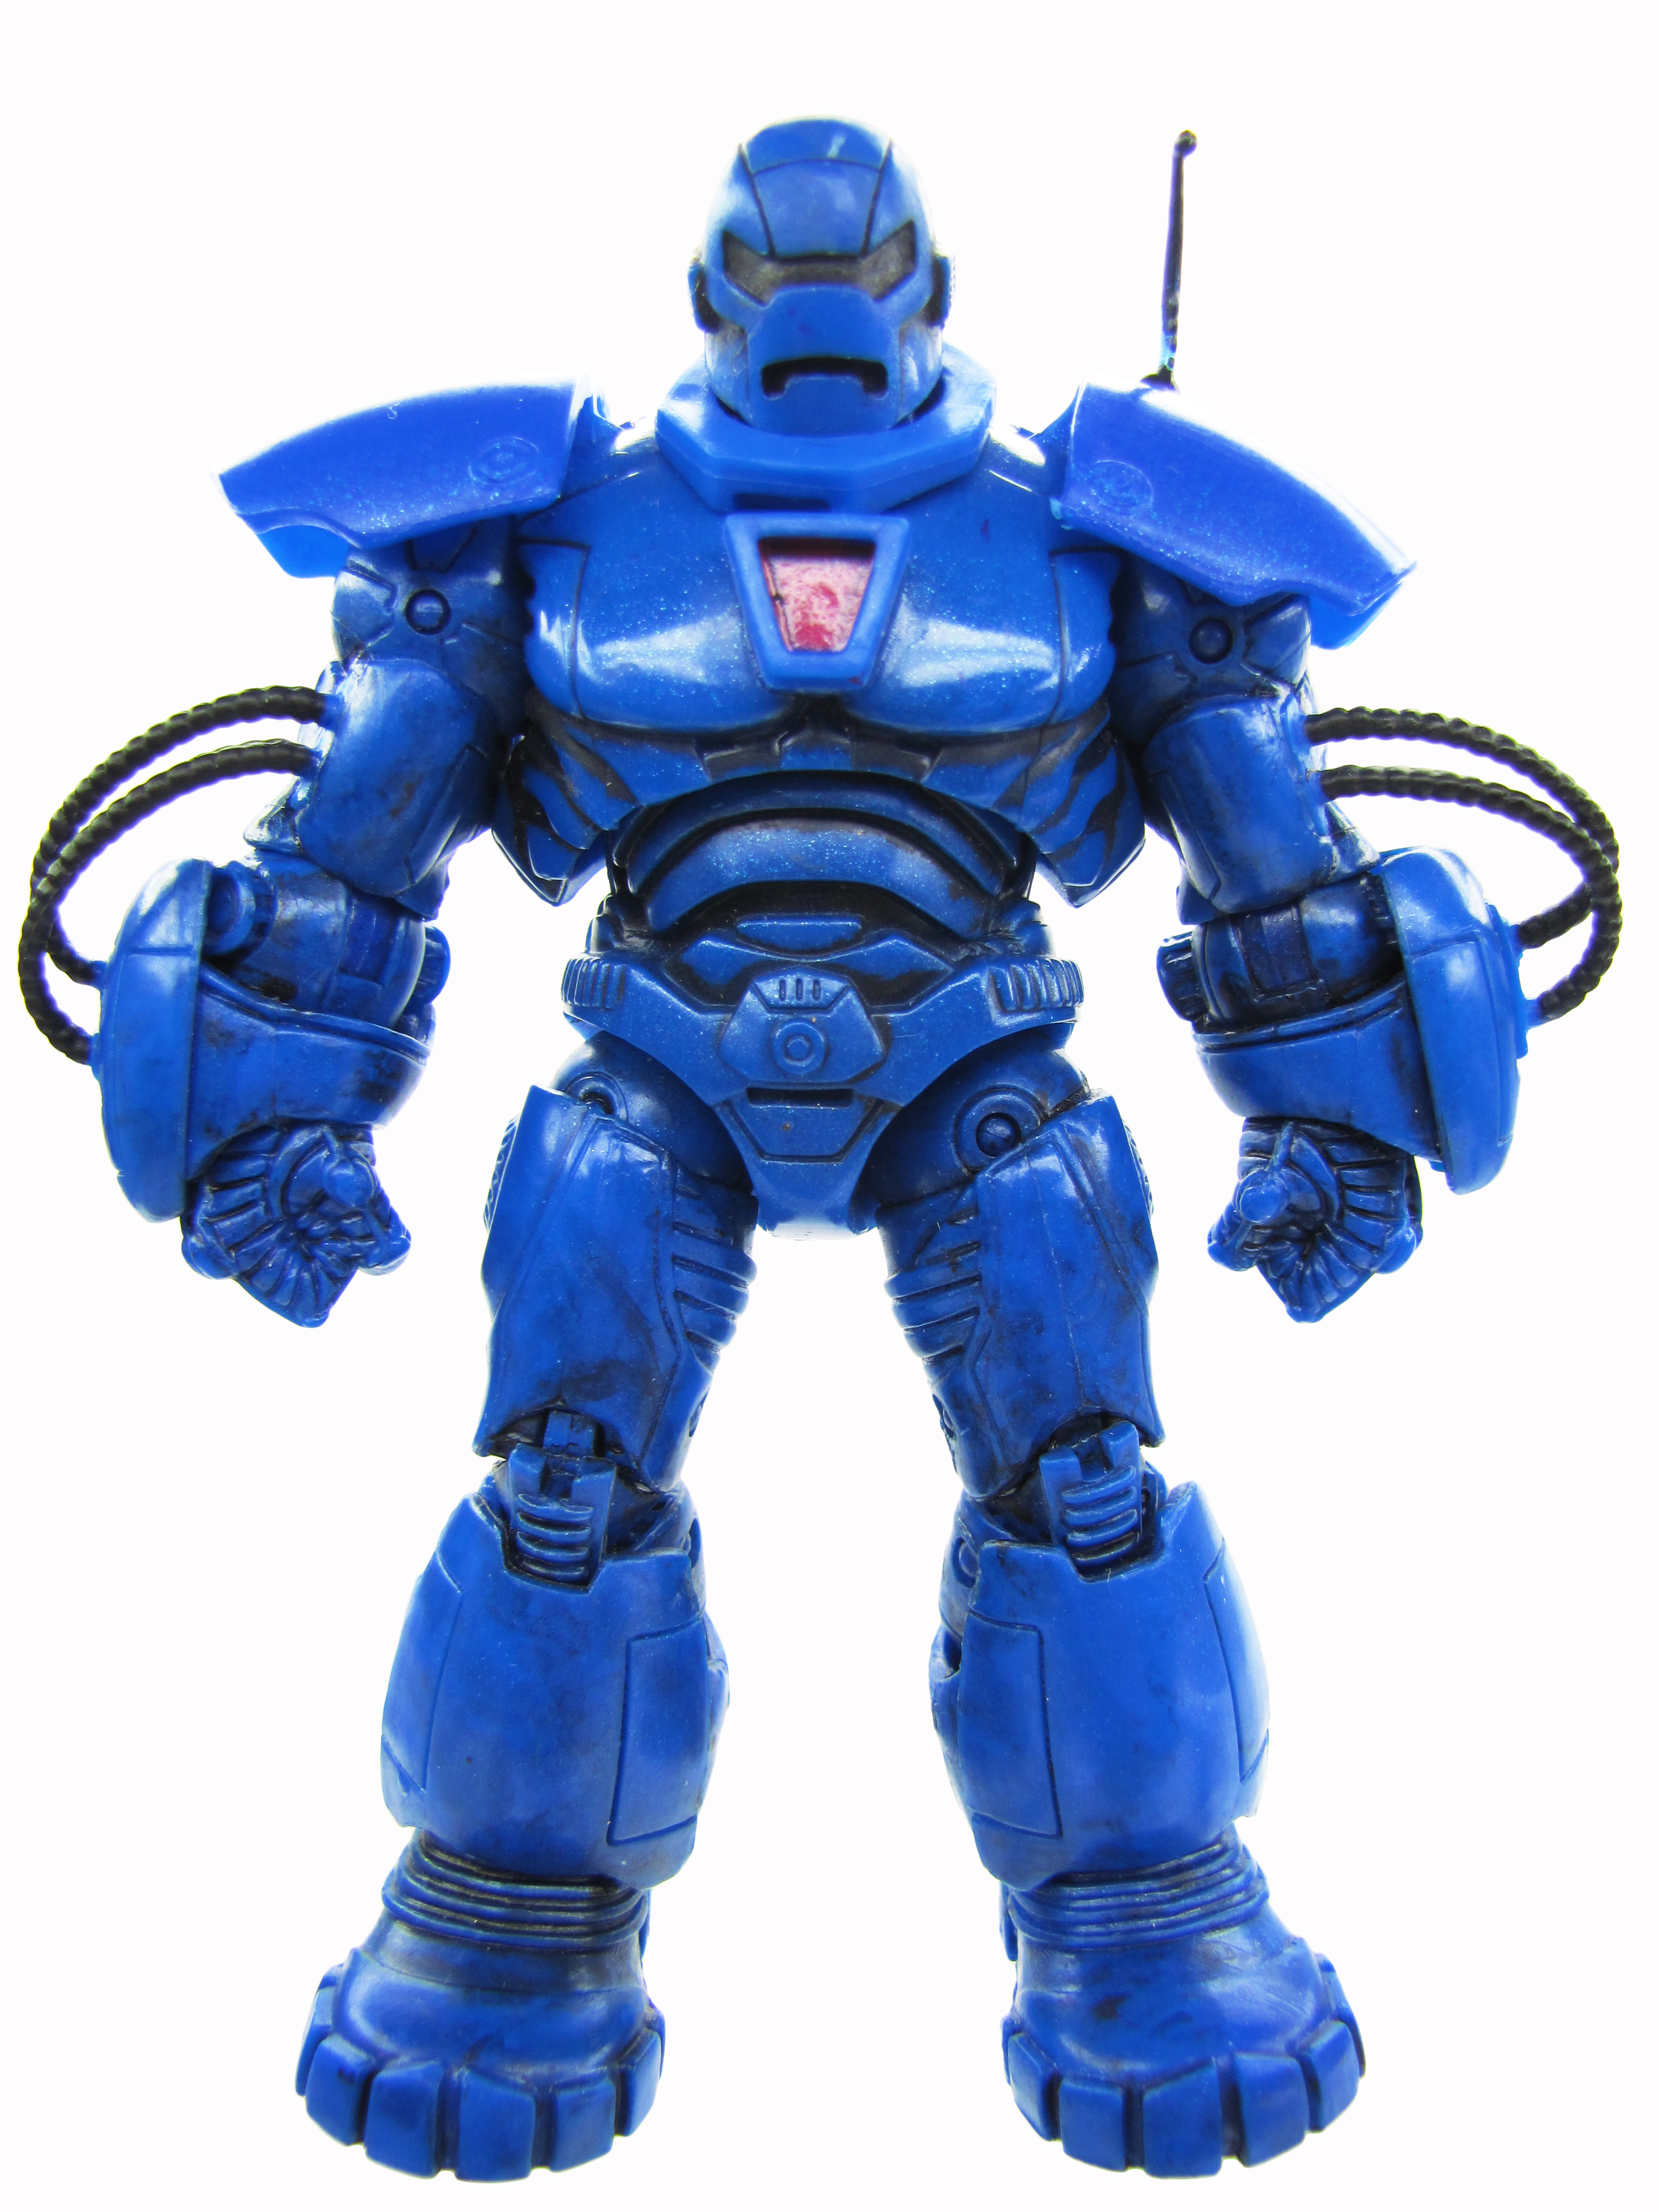 2010 Iron Man 2 Movie Series IRON MONGER Classic Blue Mint Condition